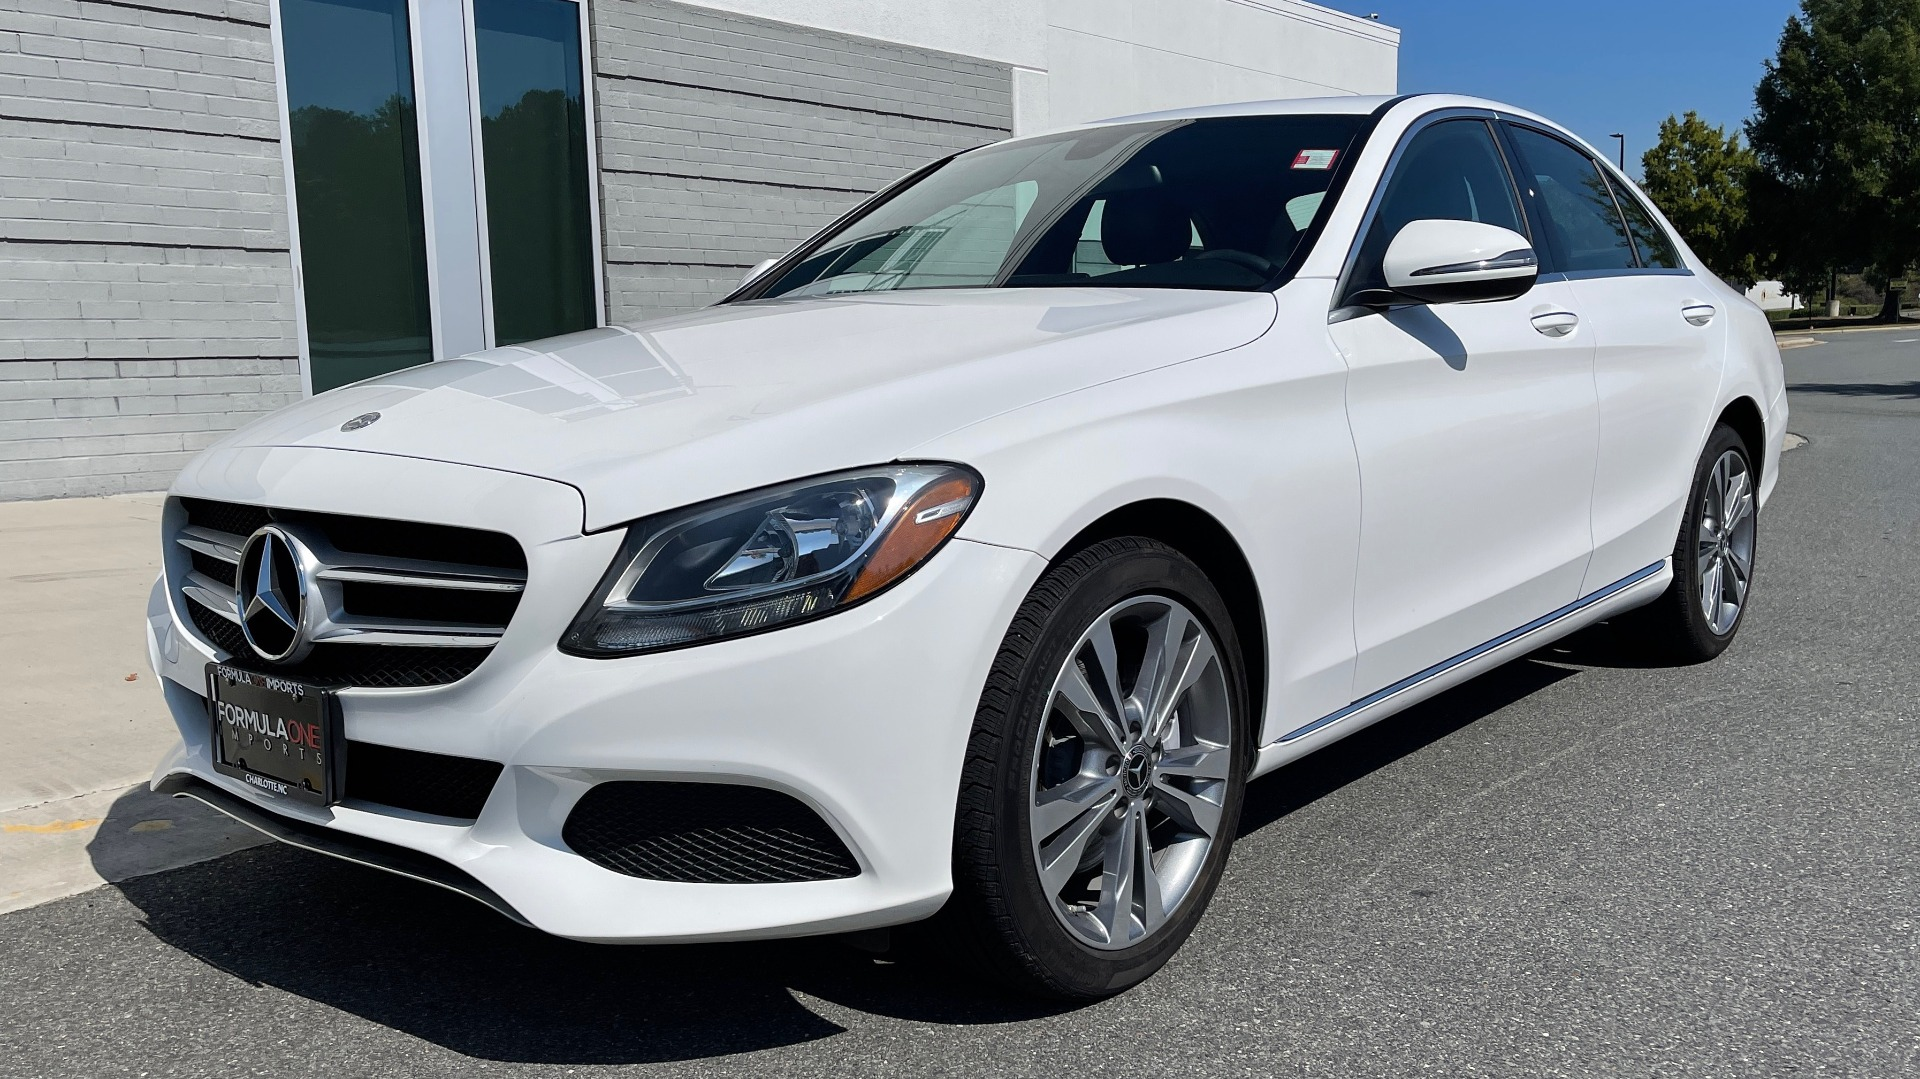 Used 2018 Mercedes-Benz C-CLASS C 300 PREMIUM / APPLE CARPLAY / KEYLESS-GO / SUNROOF / REARVIEW for sale $32,995 at Formula Imports in Charlotte NC 28227 3